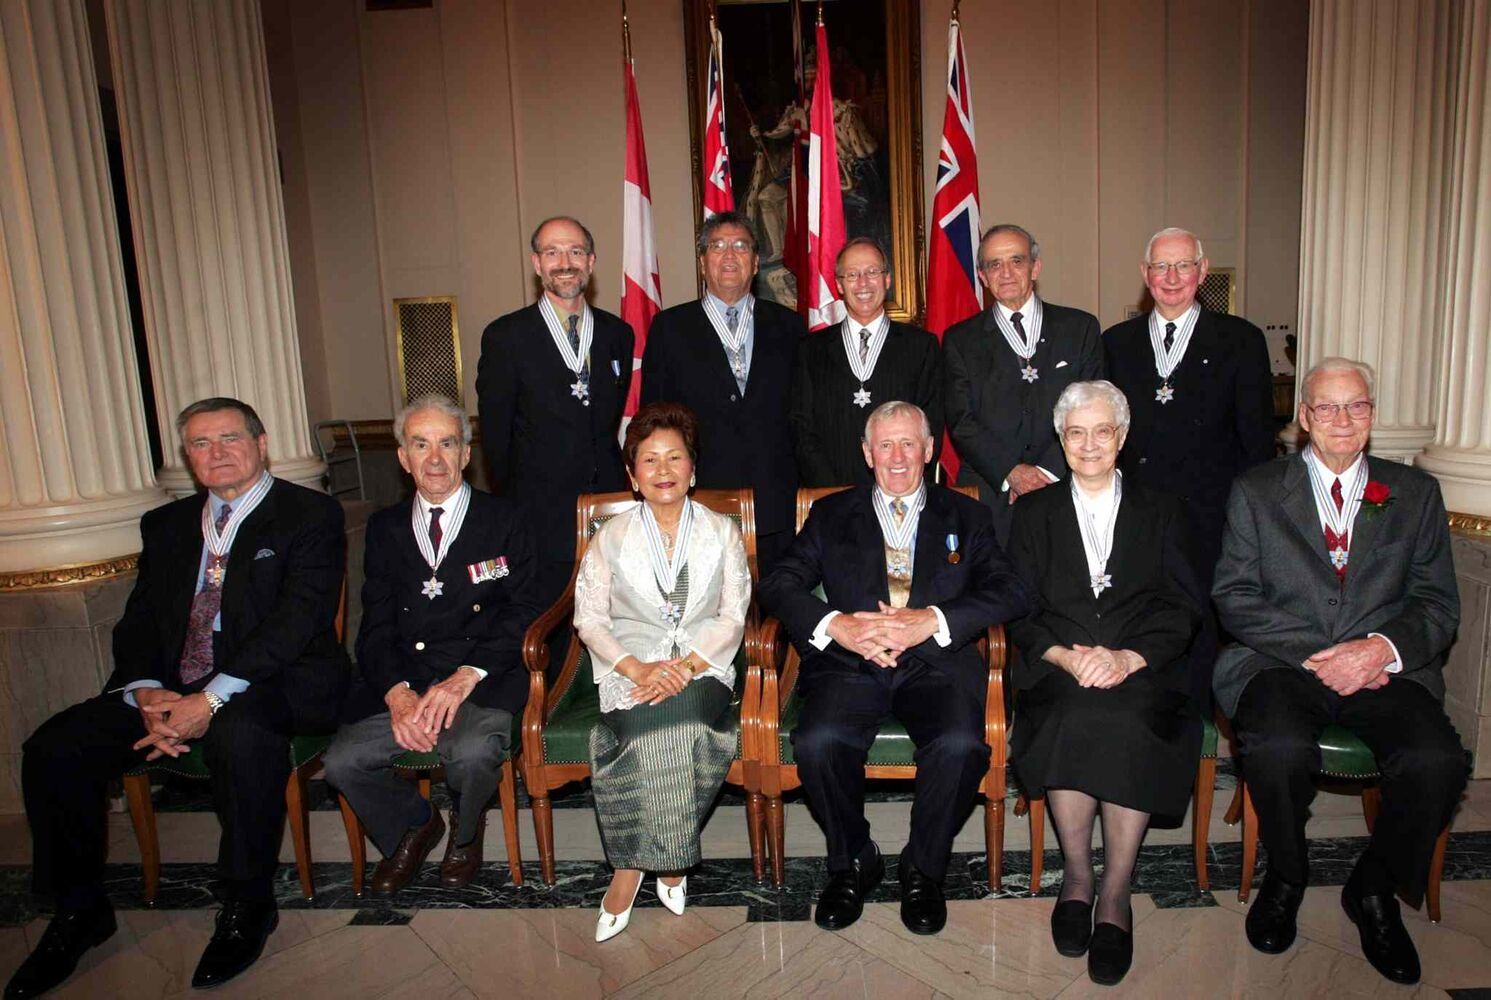 Eleven Manitobans receive the Order of Manitoba during a ceremony in Ottawa on July 15, 2004. Front row, left to right: The Honourable Benjamin Hewak, Val Werier, Virginia Guiang, Leonard Cariou, Sister Theresa Champagne and Vern Hildahl. Back row, left to right: Dr. Harvey Chochinov, Dr. Don Robertson, Samuel Katz, Dr. Arthur Mauro and Dr. Henry Friesen.  (WAYNE GLOWACKI / /WINNIPEG FREE PRESS FILES)